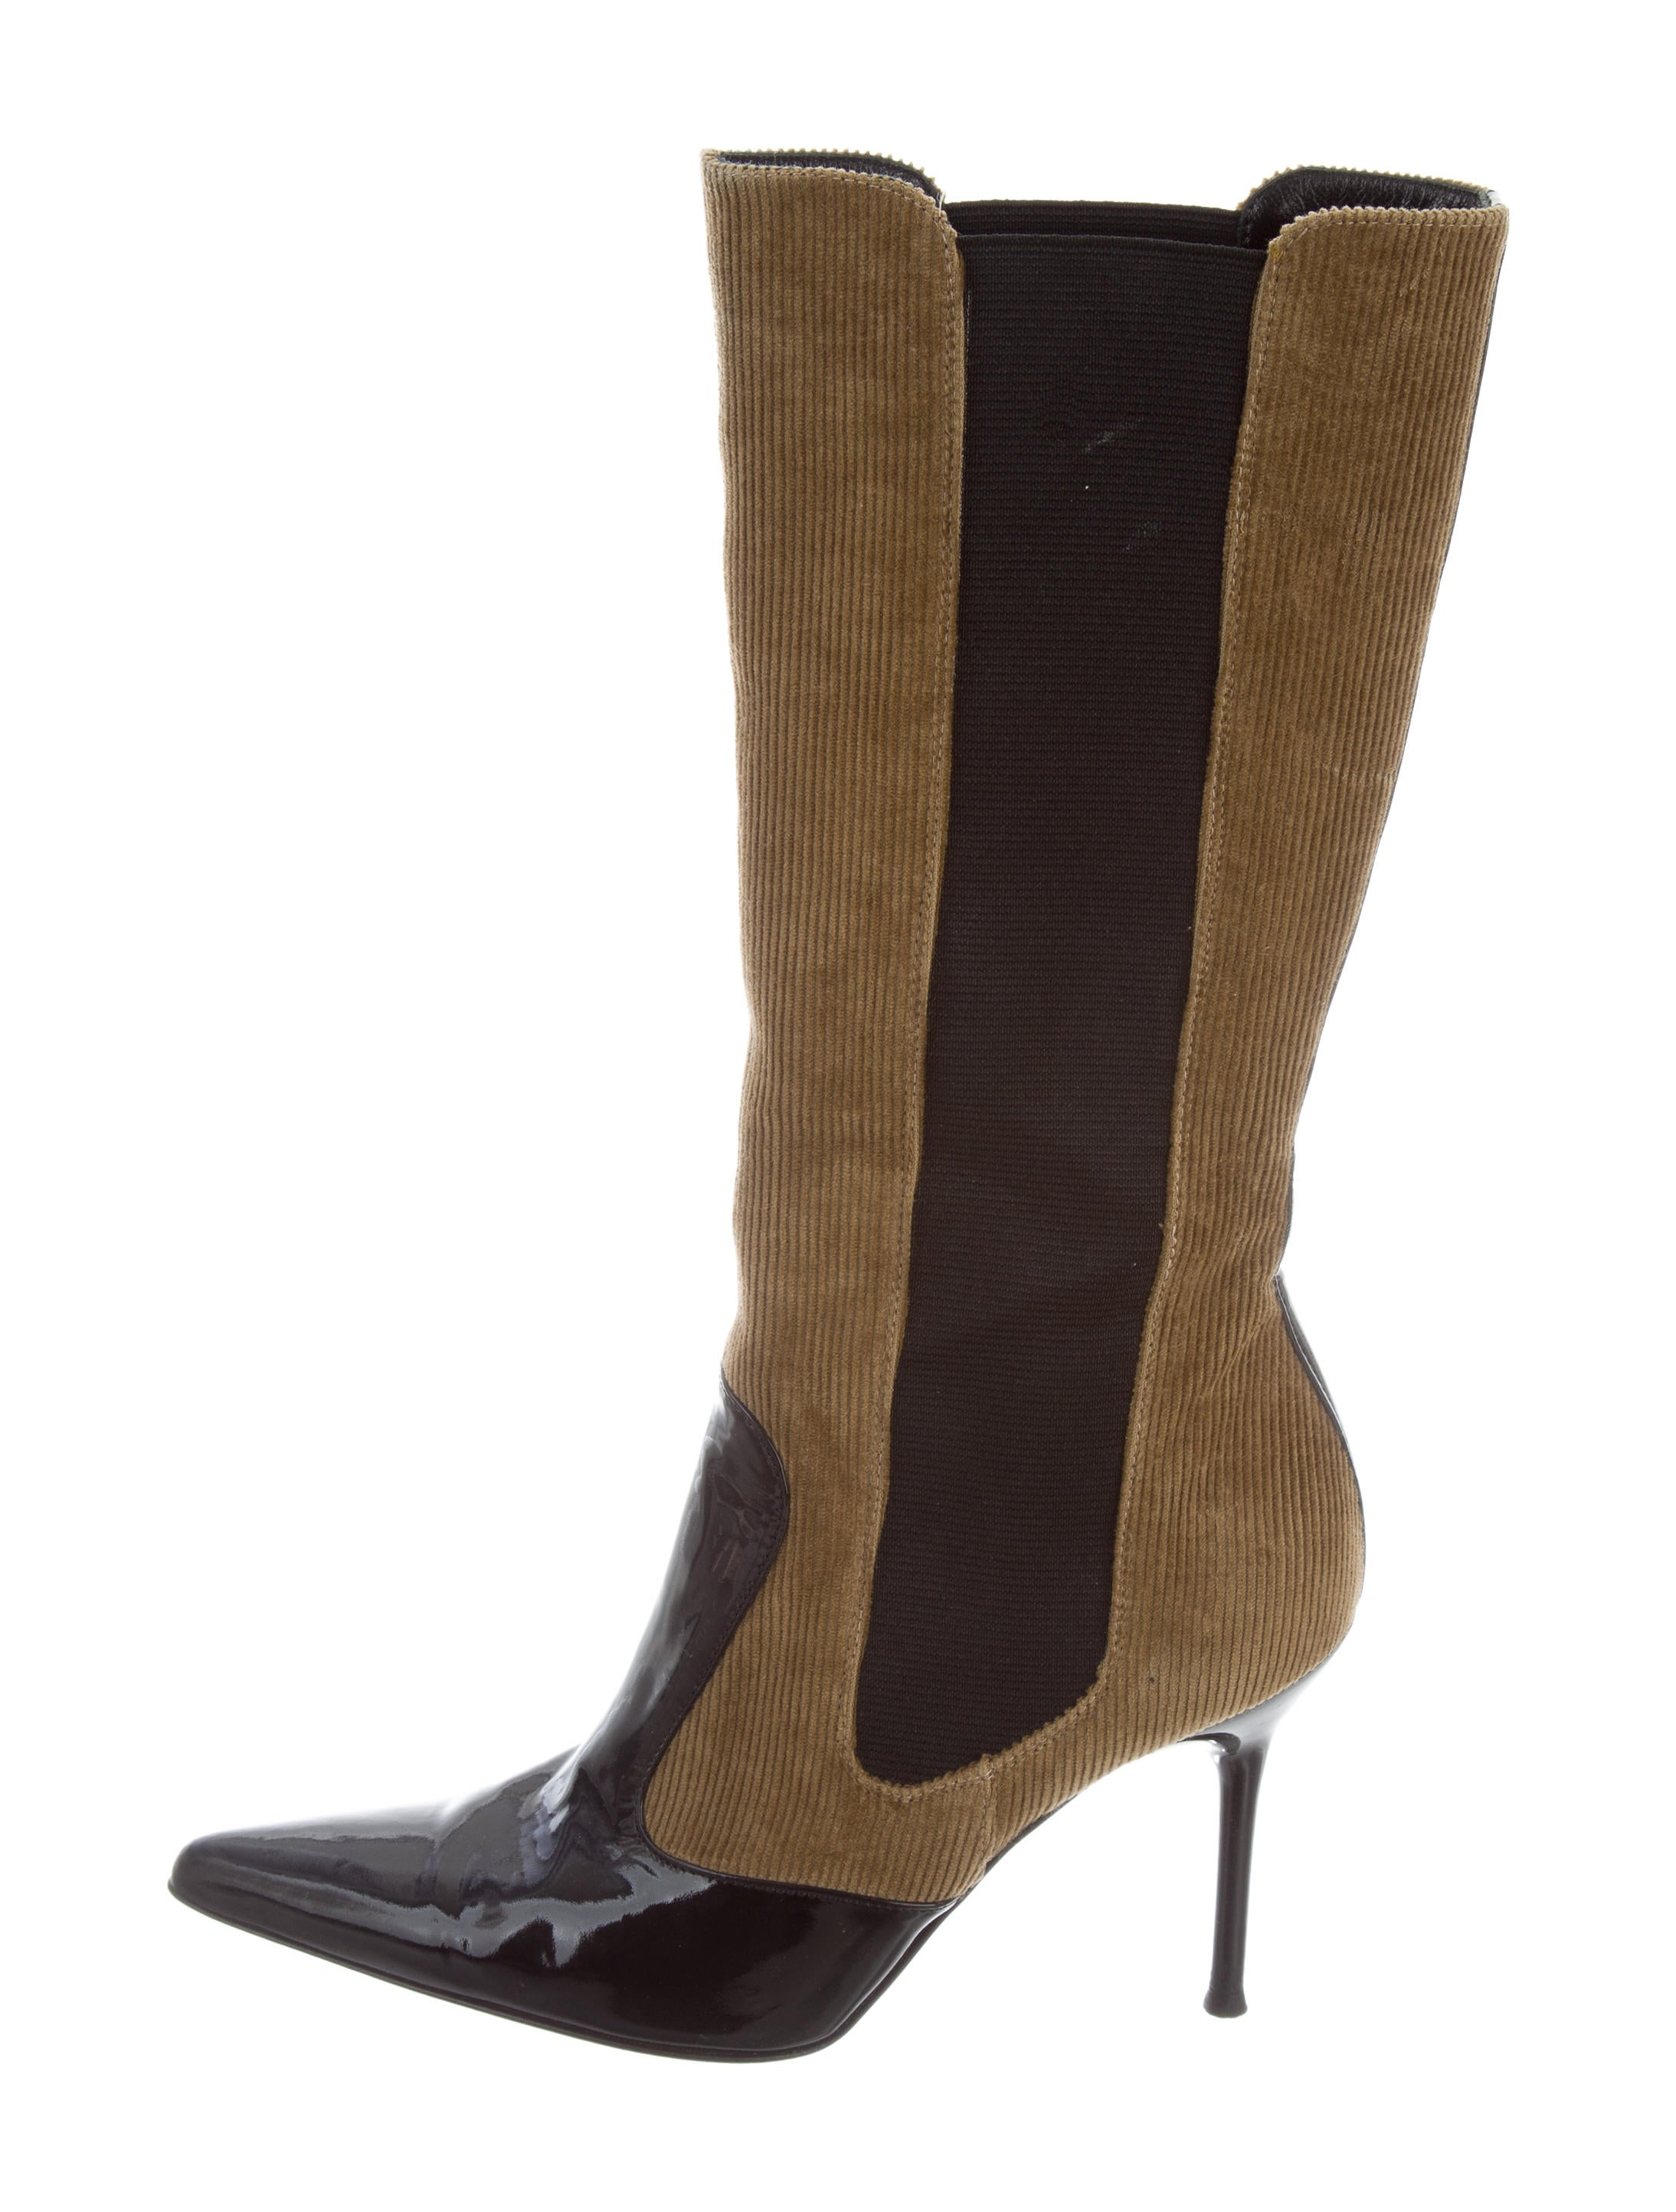 Dolce & Gabbana Pointed-Toe Corduroy Boots recommend cheap online cheap great deals wiki dKhCIXfA